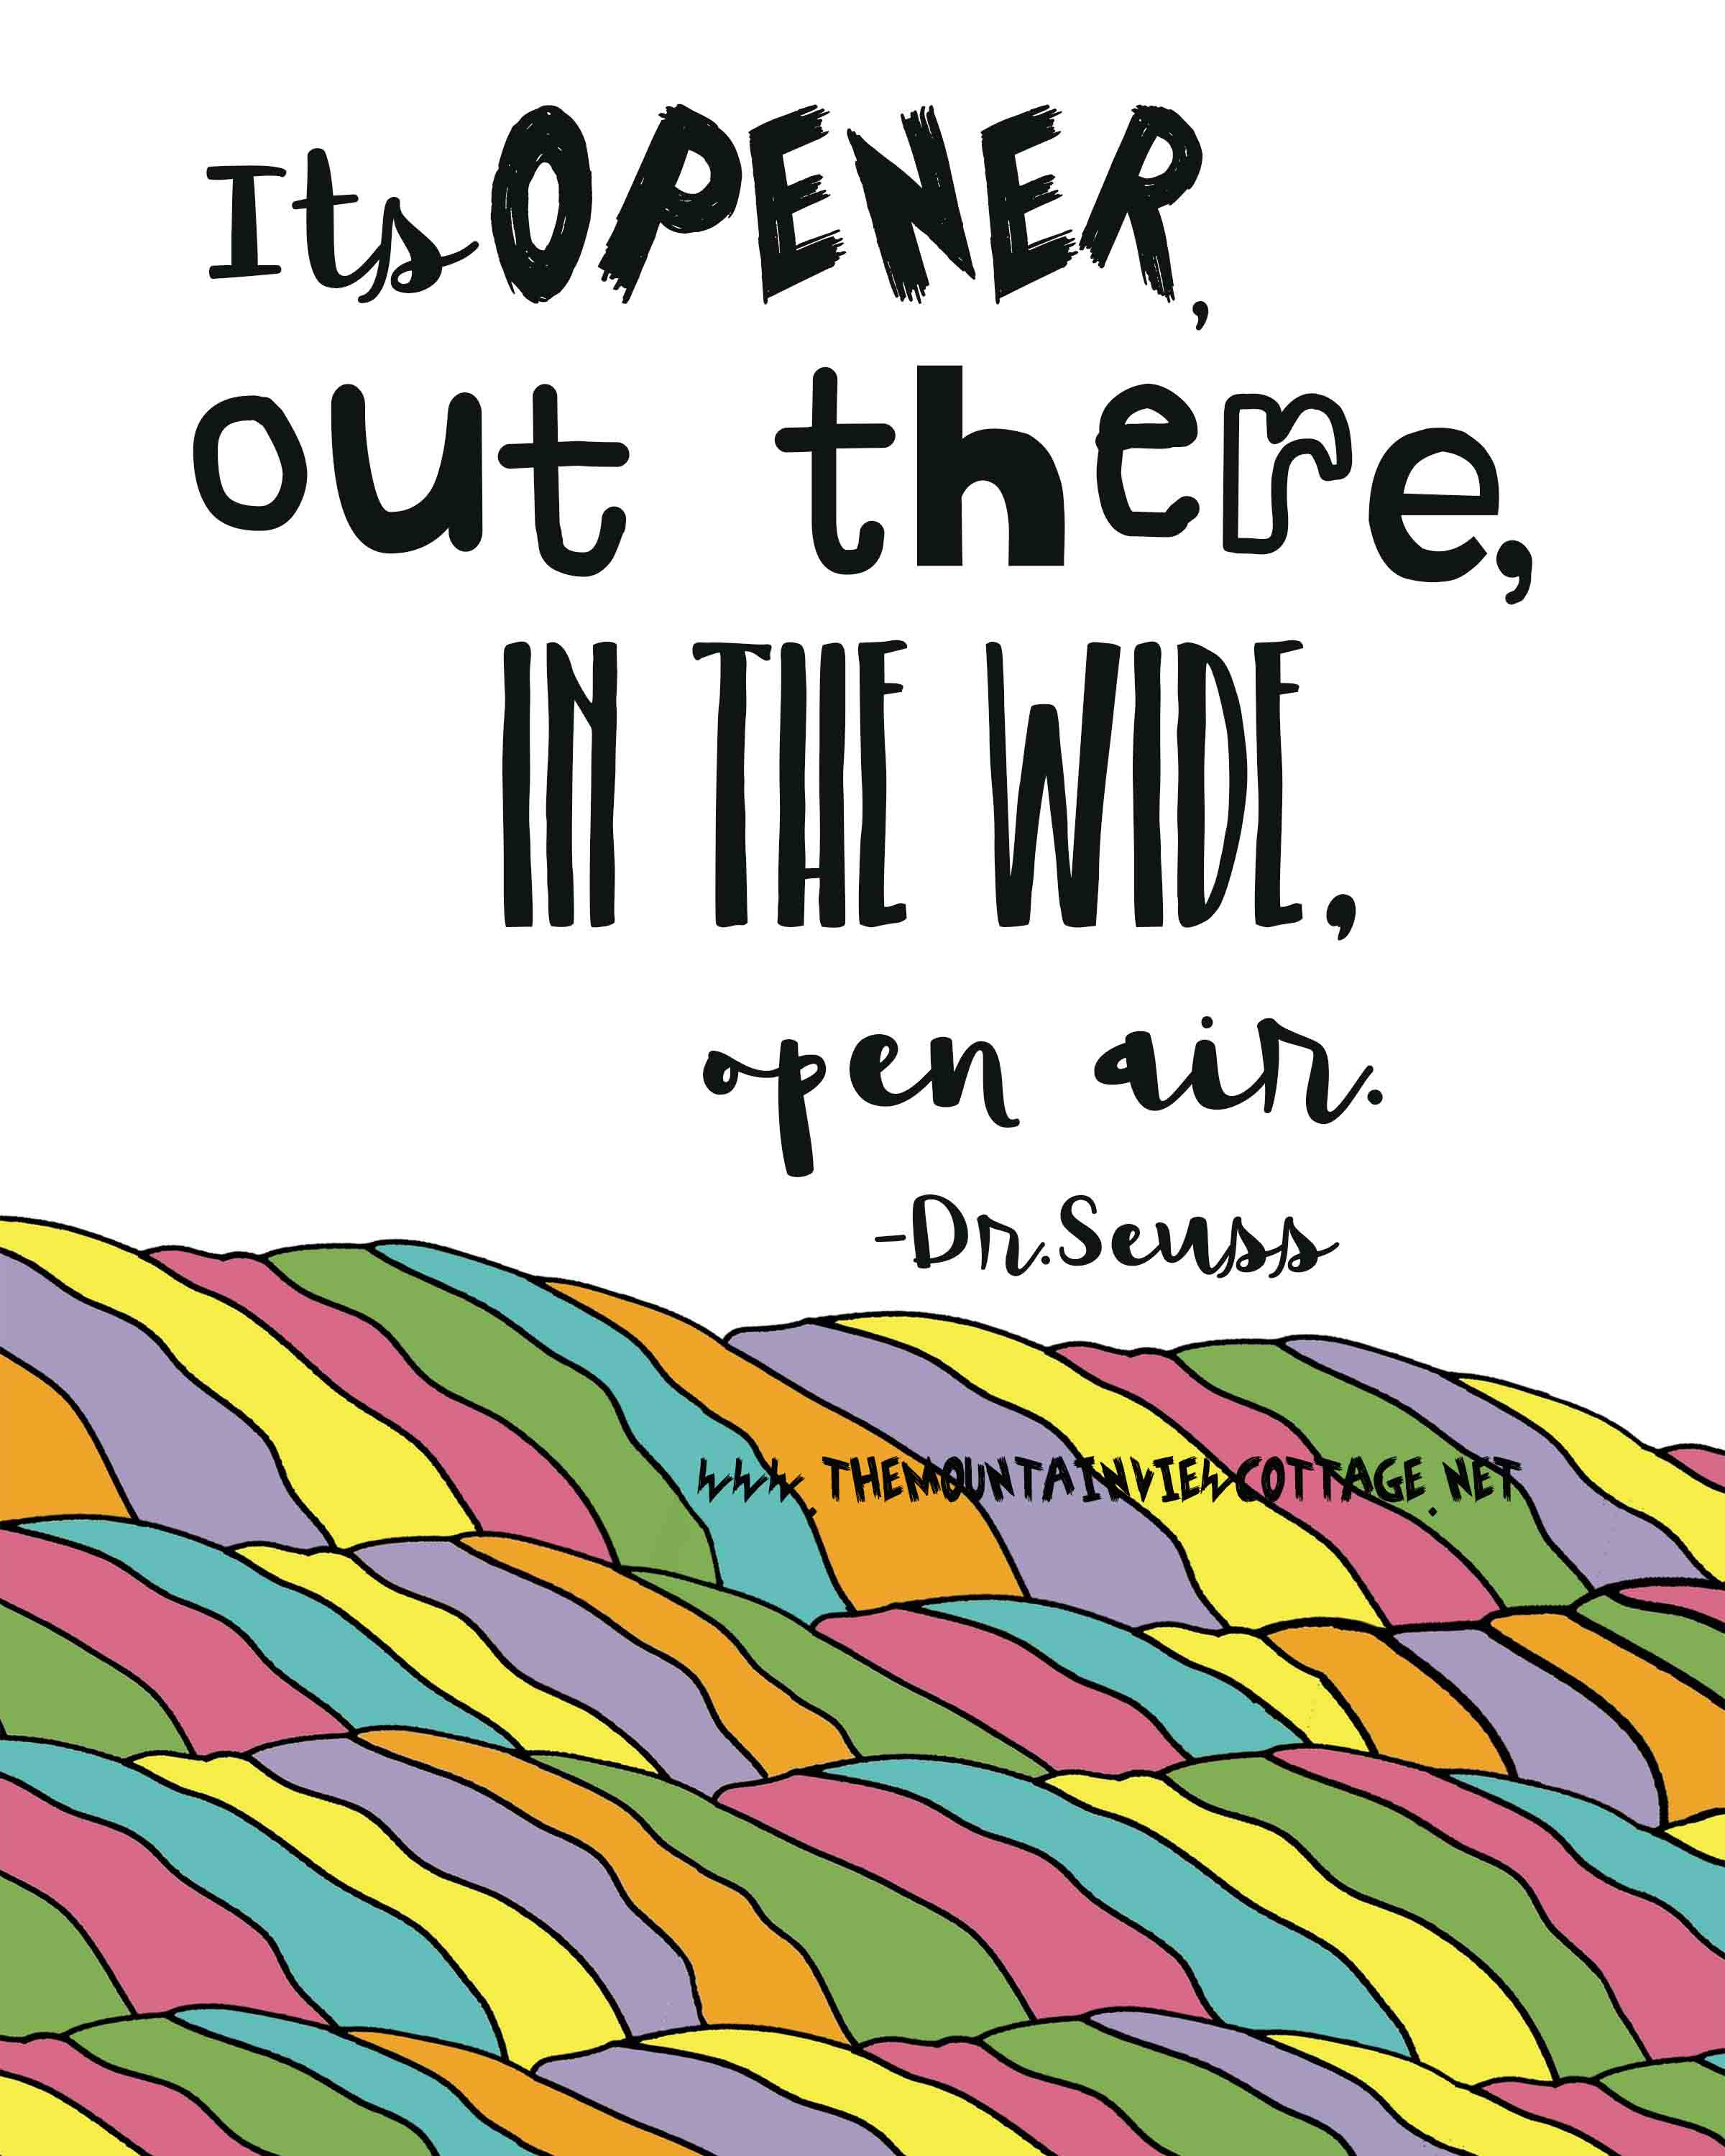 nature quotes-cute kid quotes-boy quotes-outdoor quotes-Dr.suess quotes